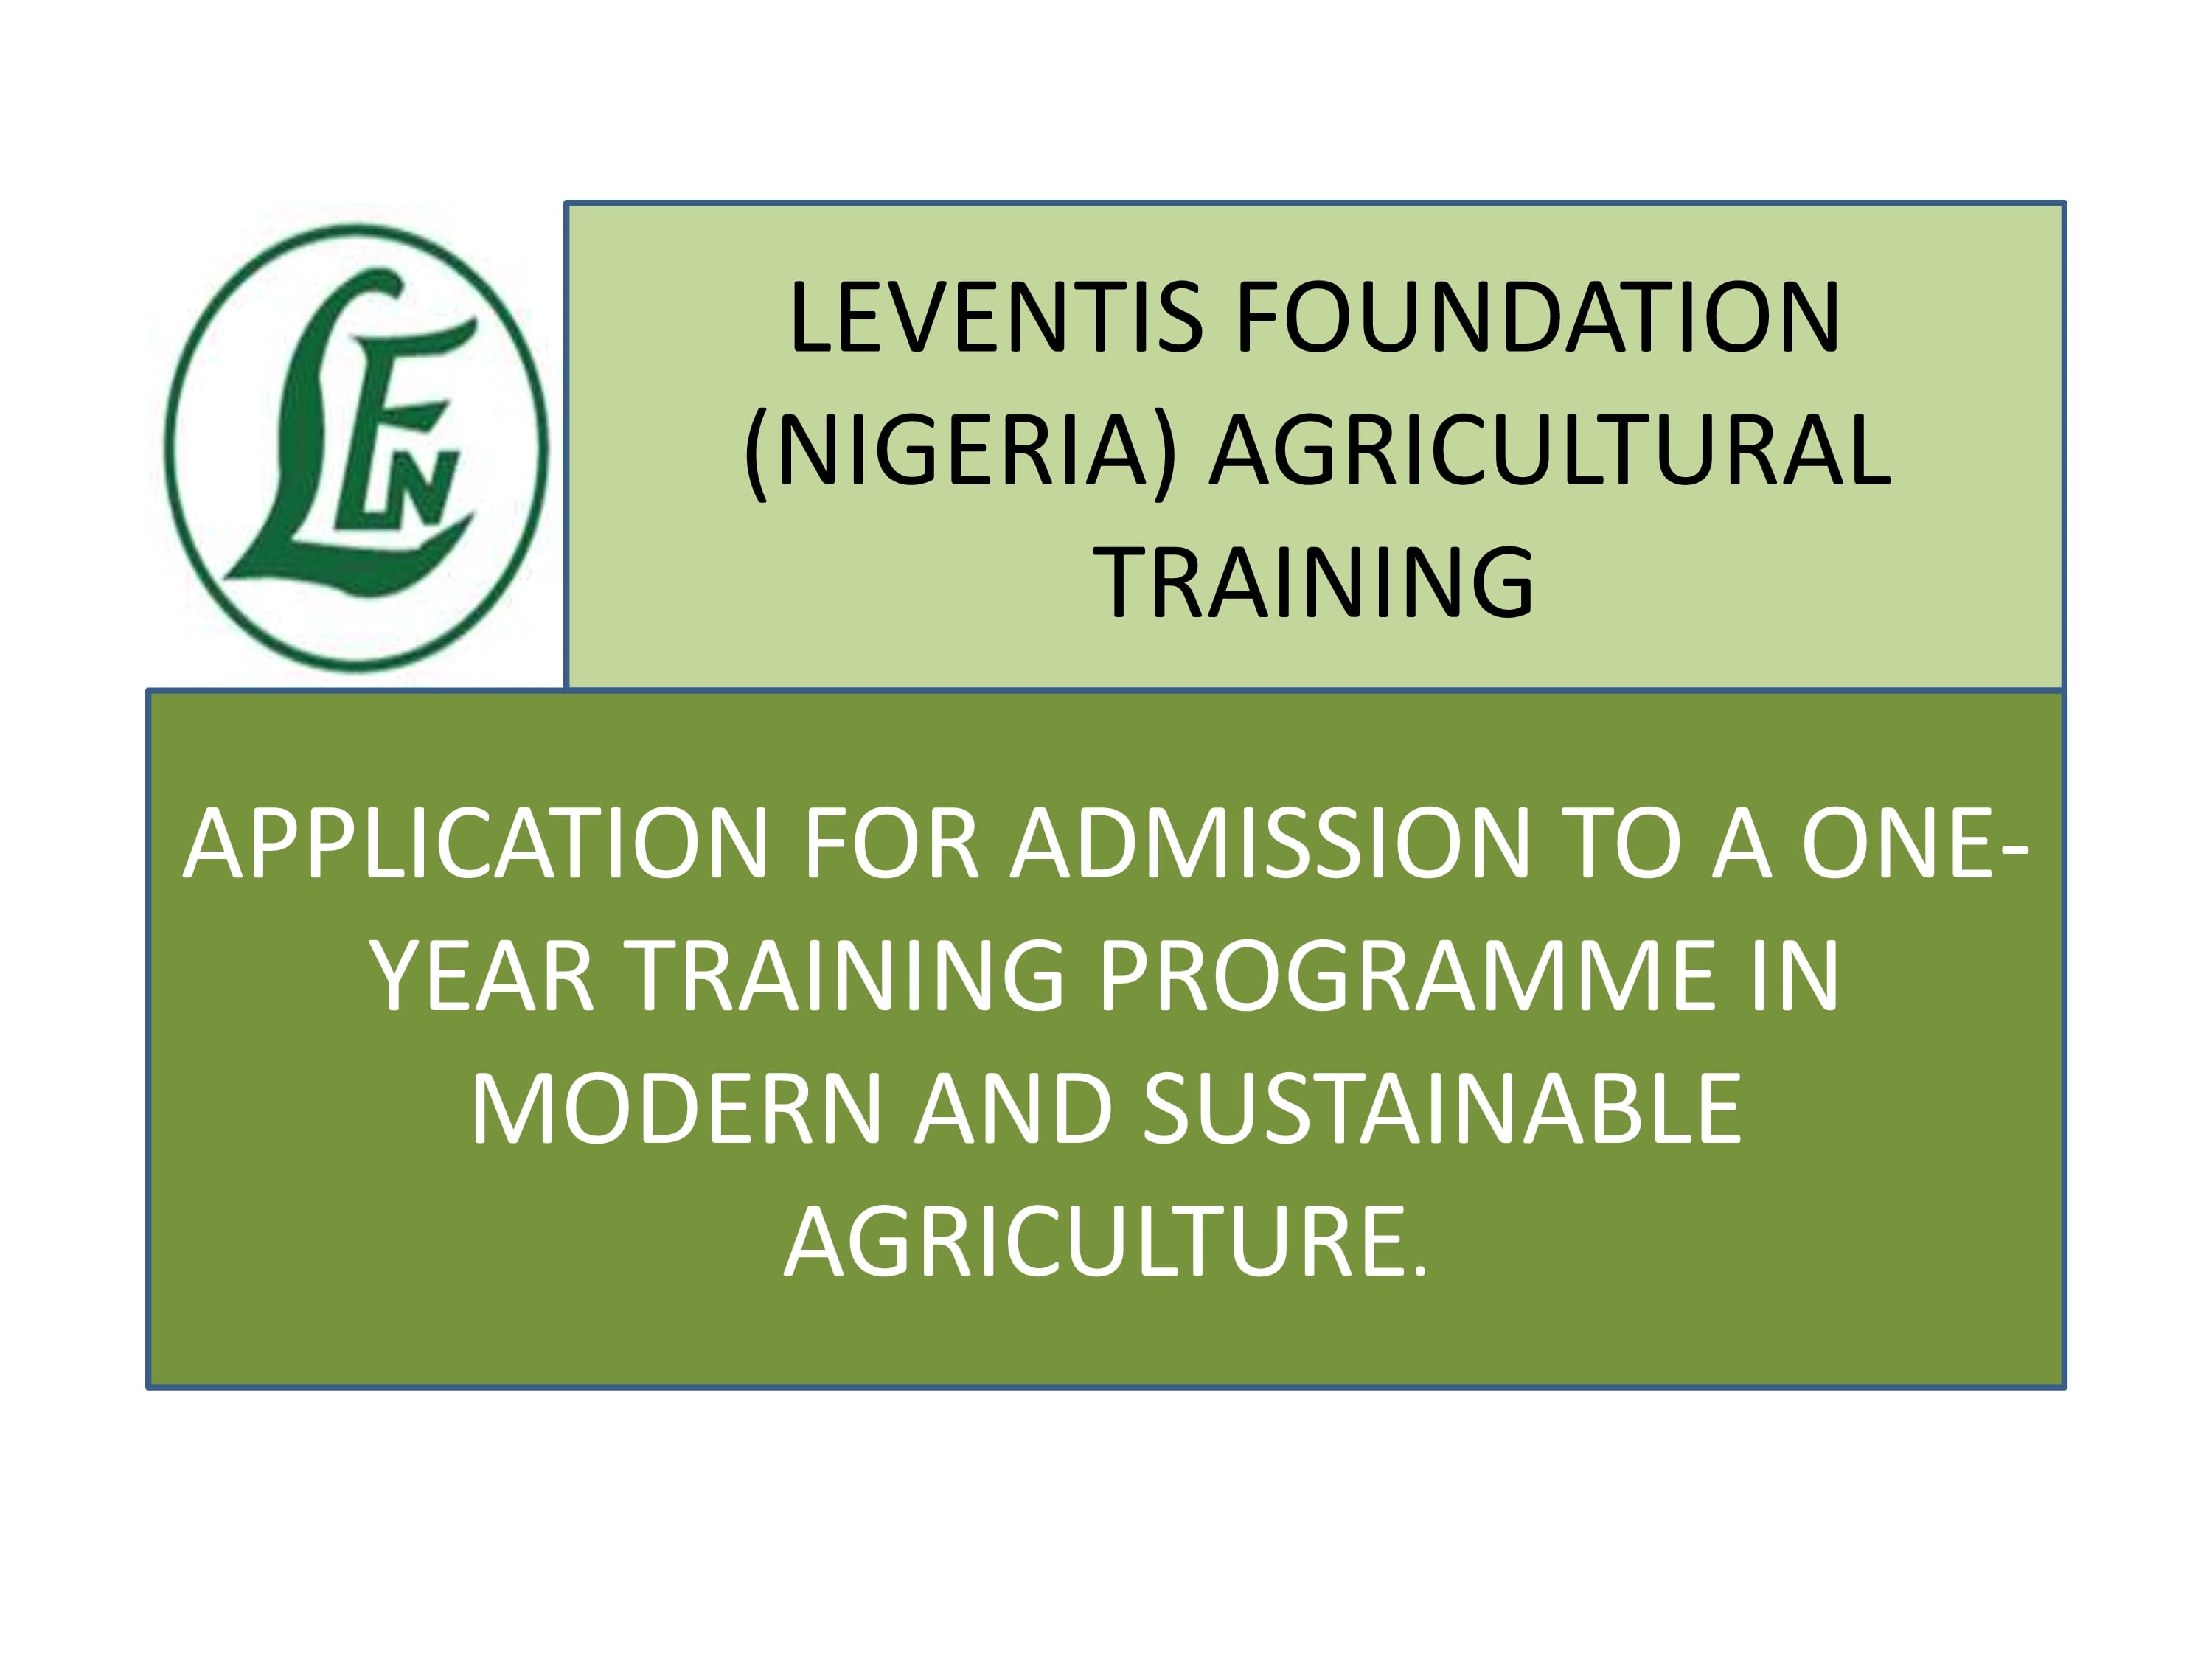 Leventis Structure (Nigeria) One-Year Training Program 2018/2019 in Modern and Sustainable Farming (Totally Moneyed)